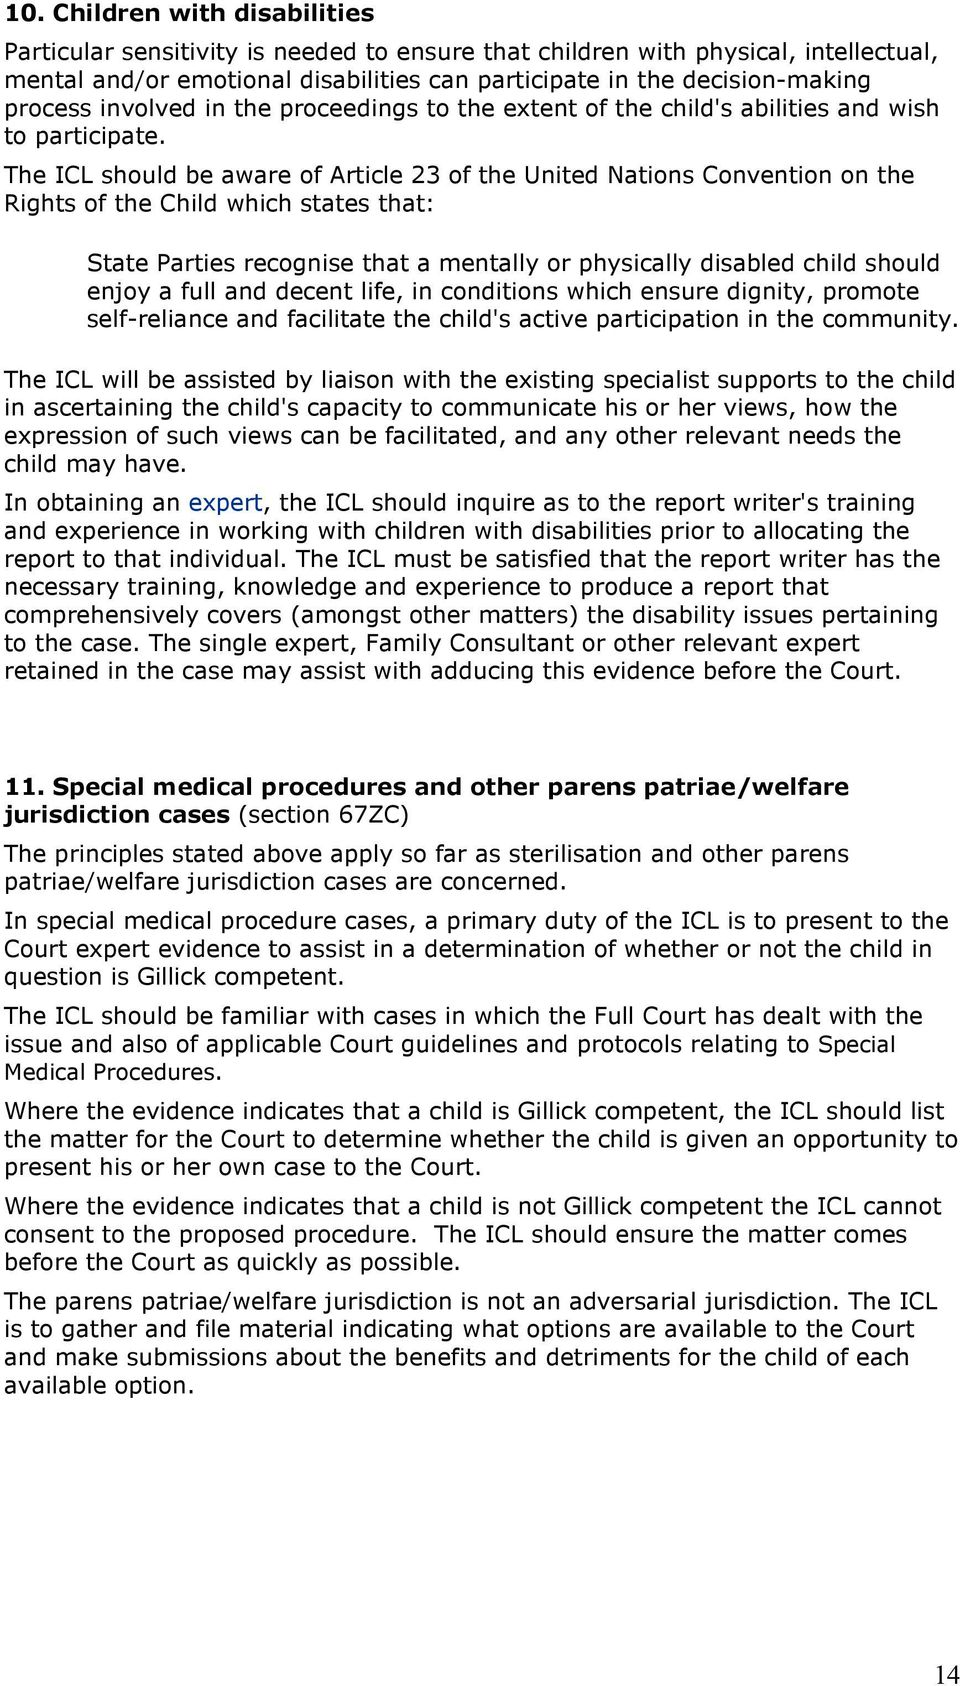 The ICL should be aware of Article 23 of the United Nations Convention on the Rights of the Child which states that: State Parties recognise that a mentally or physically disabled child should enjoy